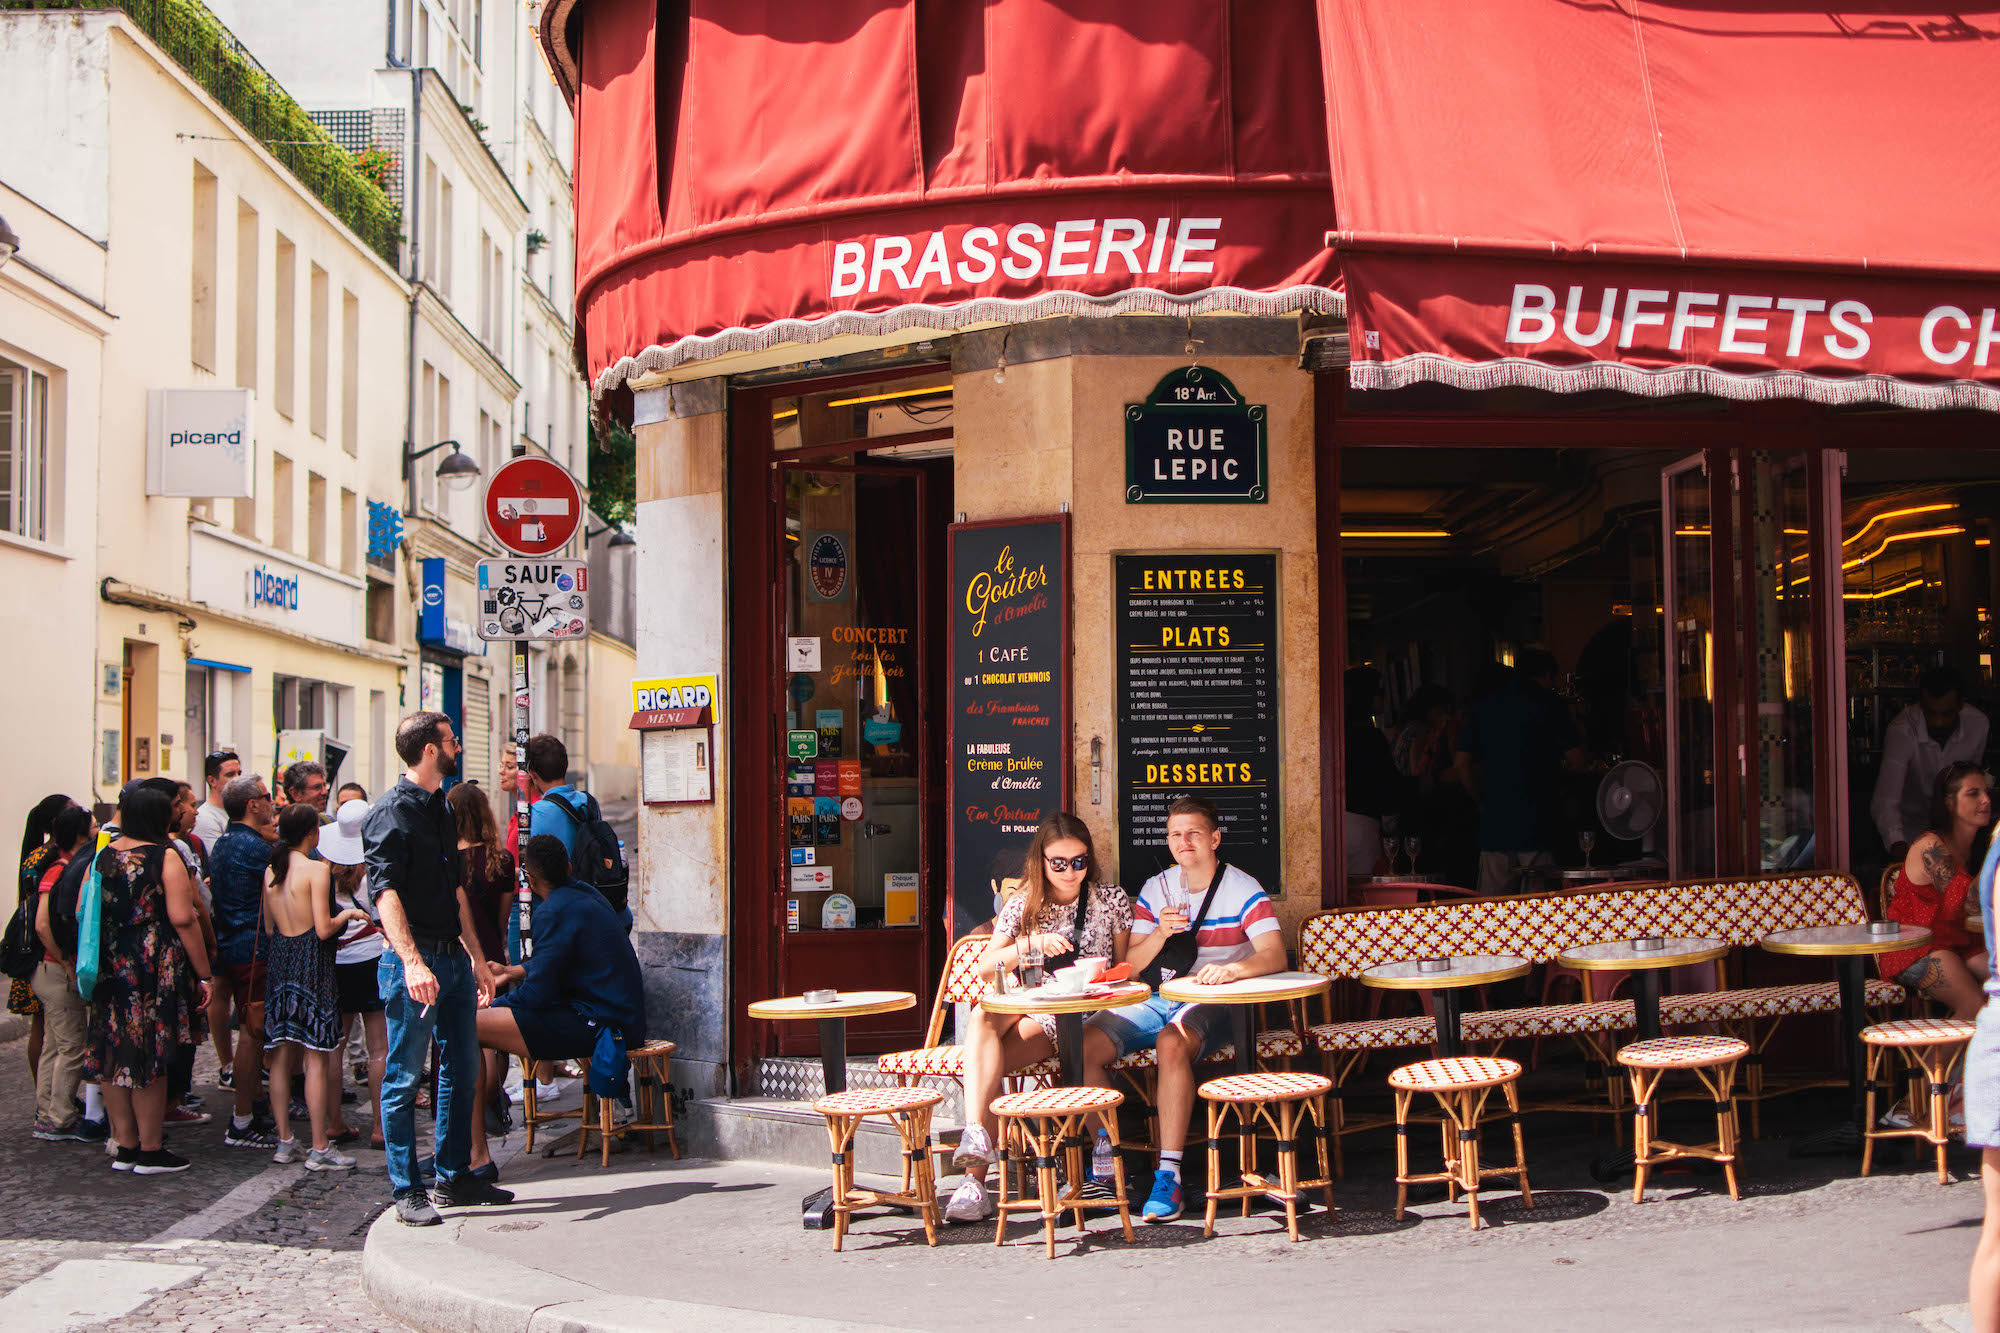 A typical Parisian brasserie with a red awning and people sitting on the terrace in the sunshine.